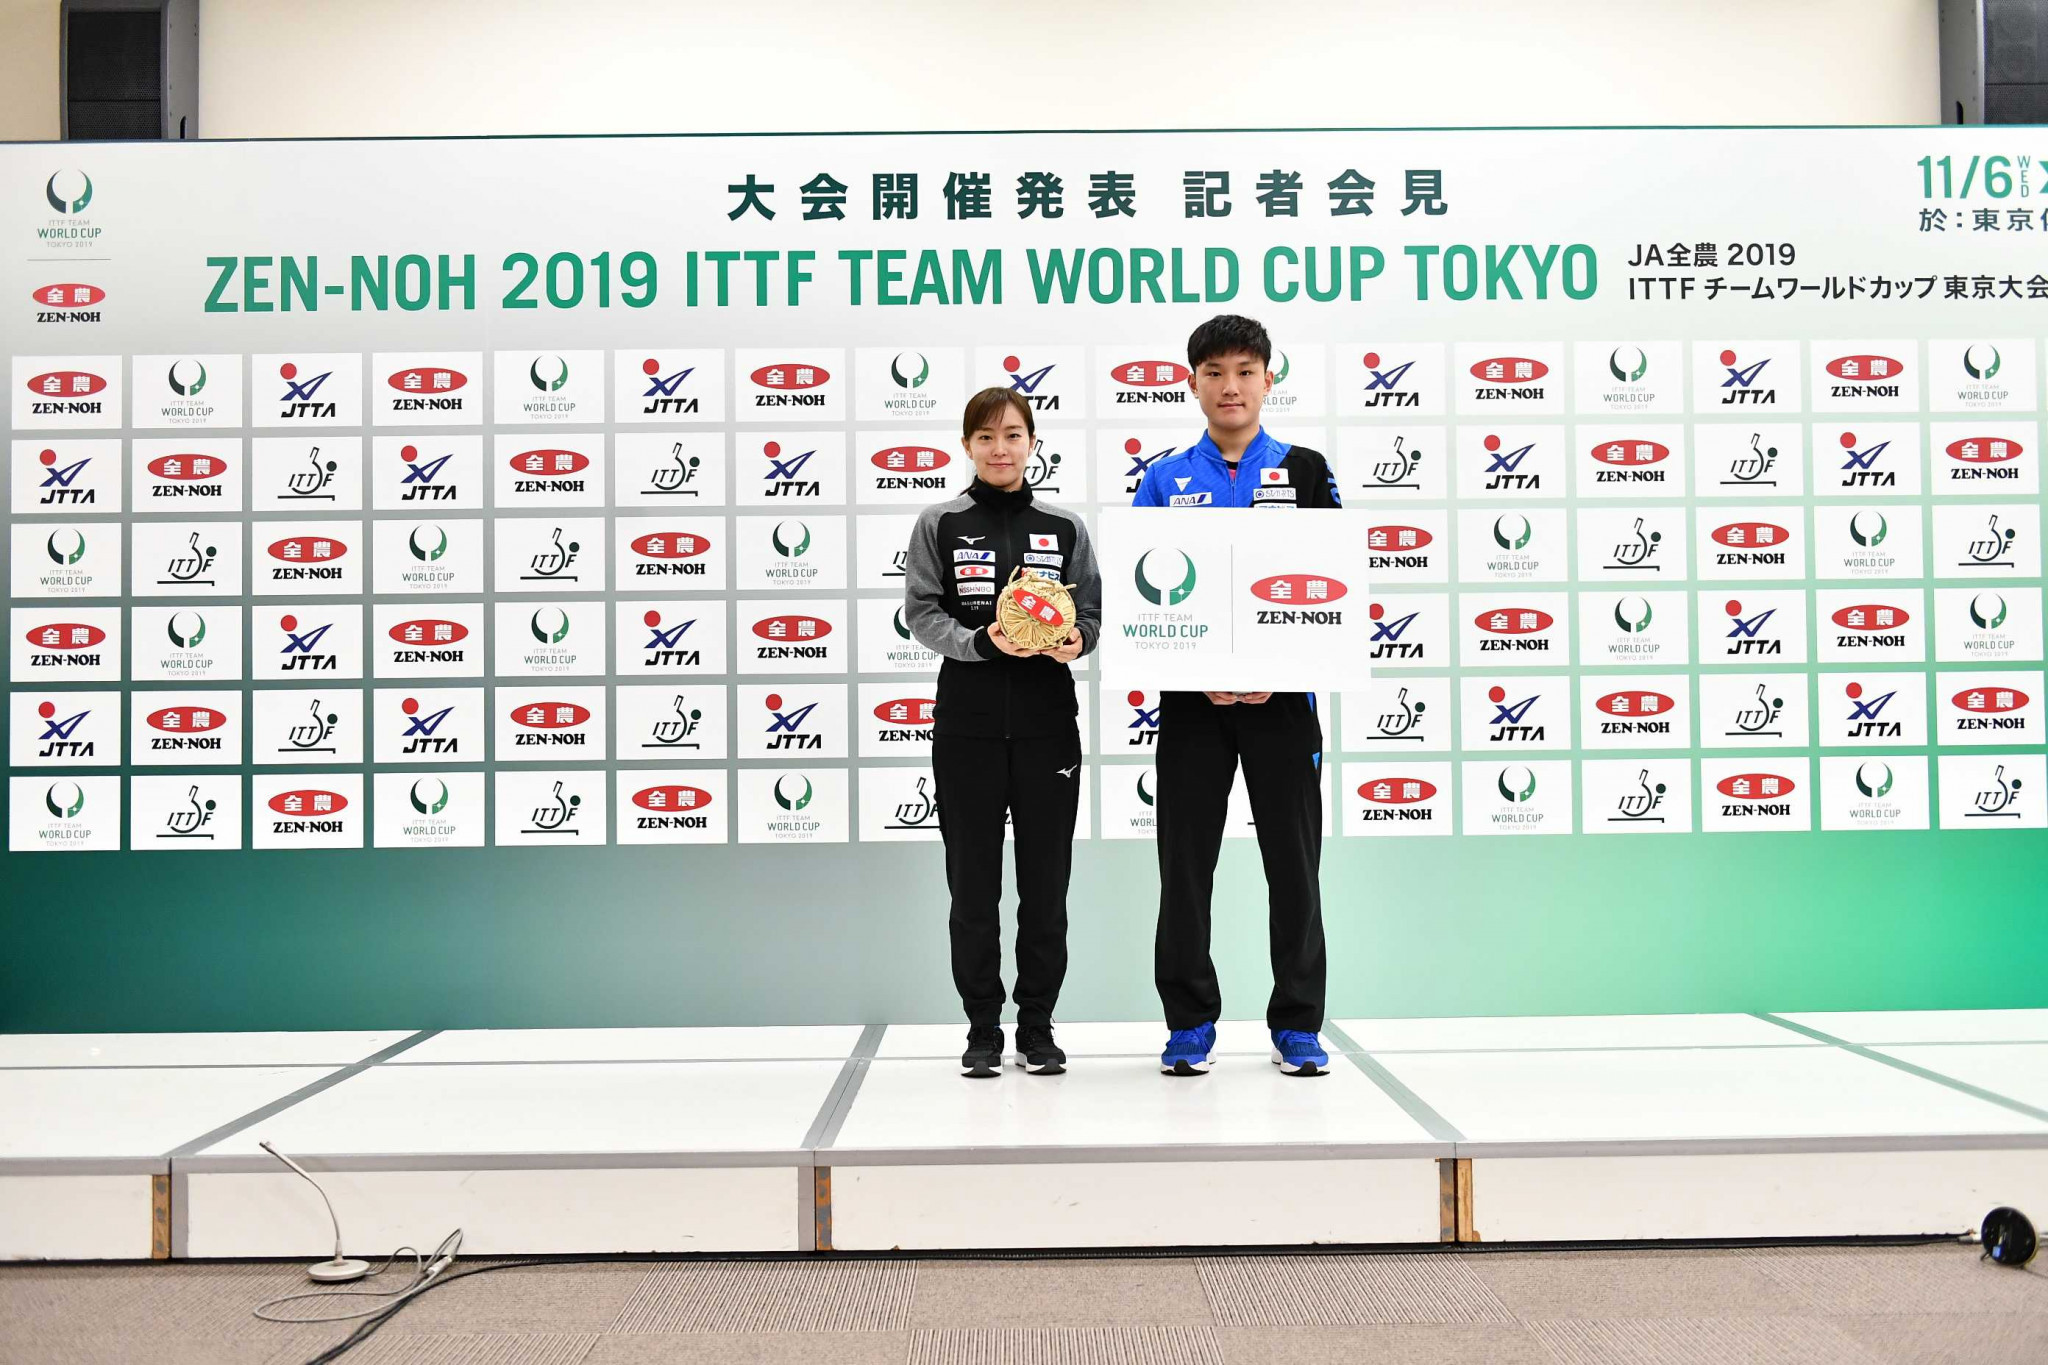 China out to maintain dominance at ITTF Team World Cup in Tokyo